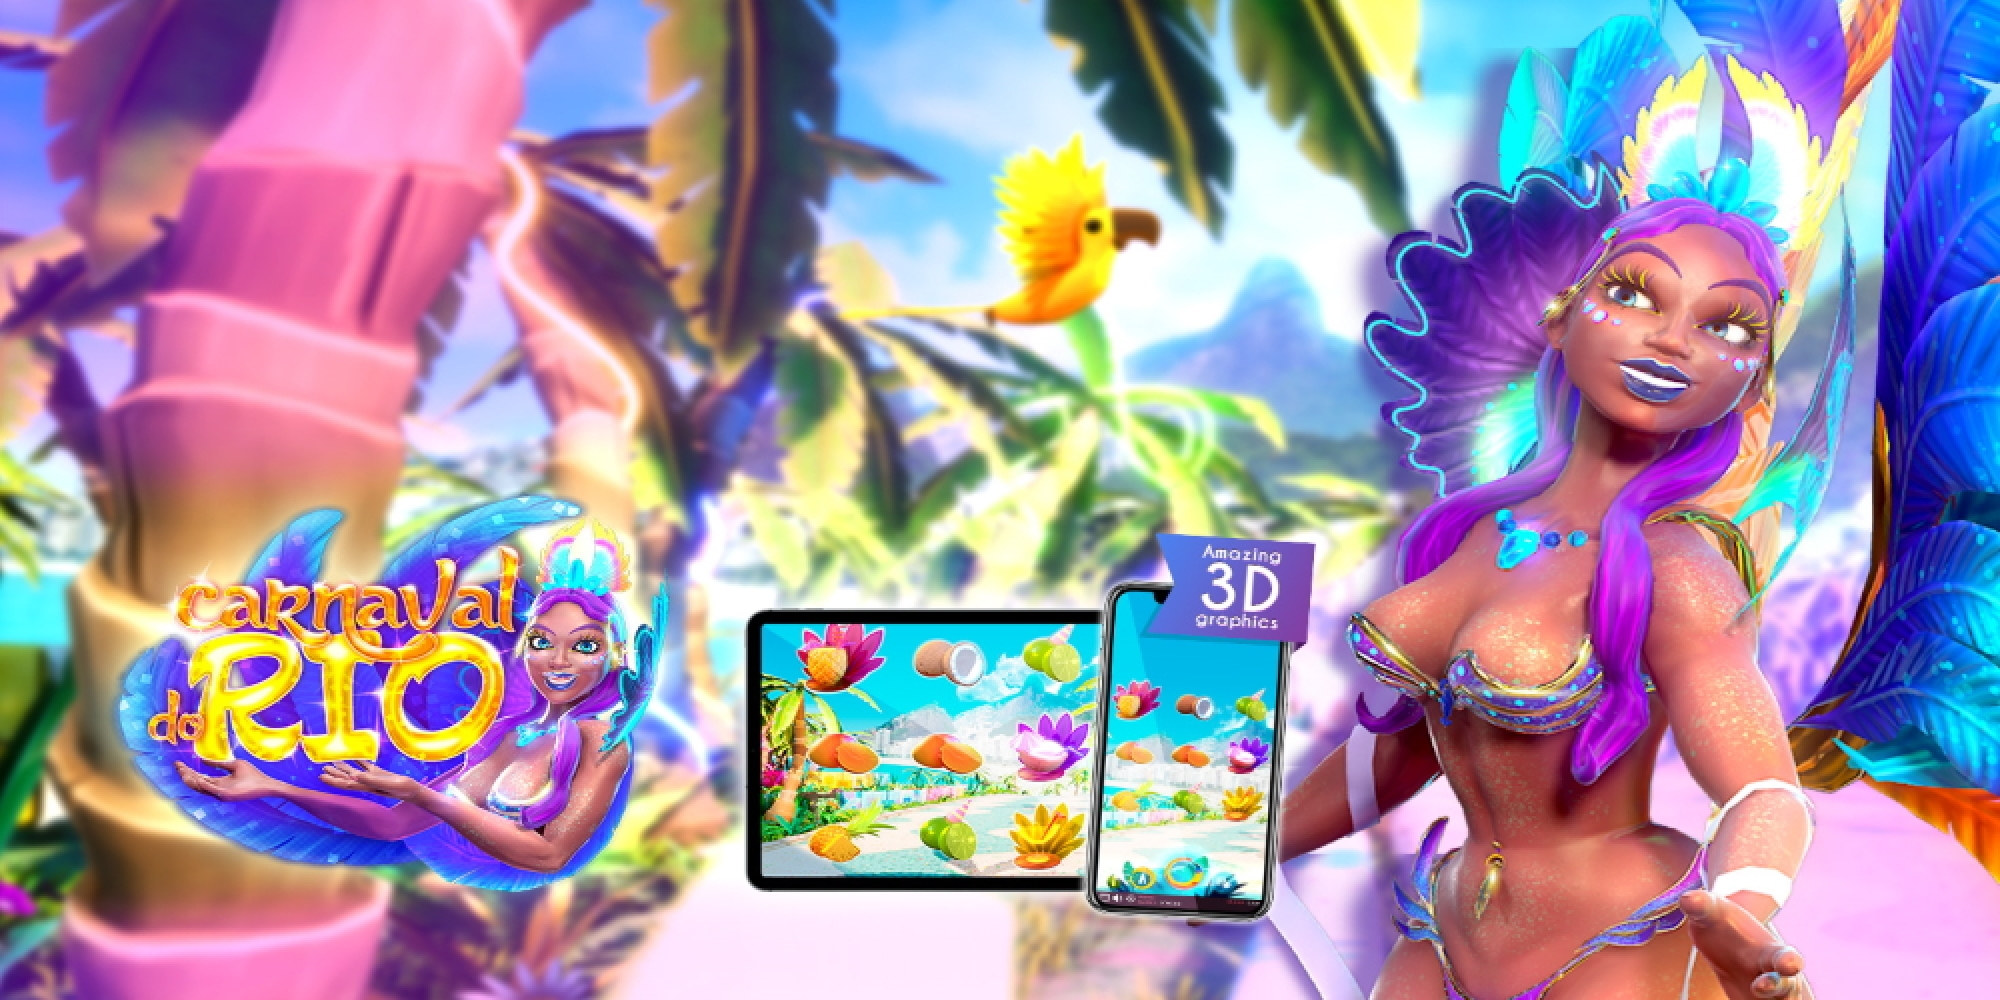 The Carnaval do Rio Online Slot Demo Game by Triple Cherry